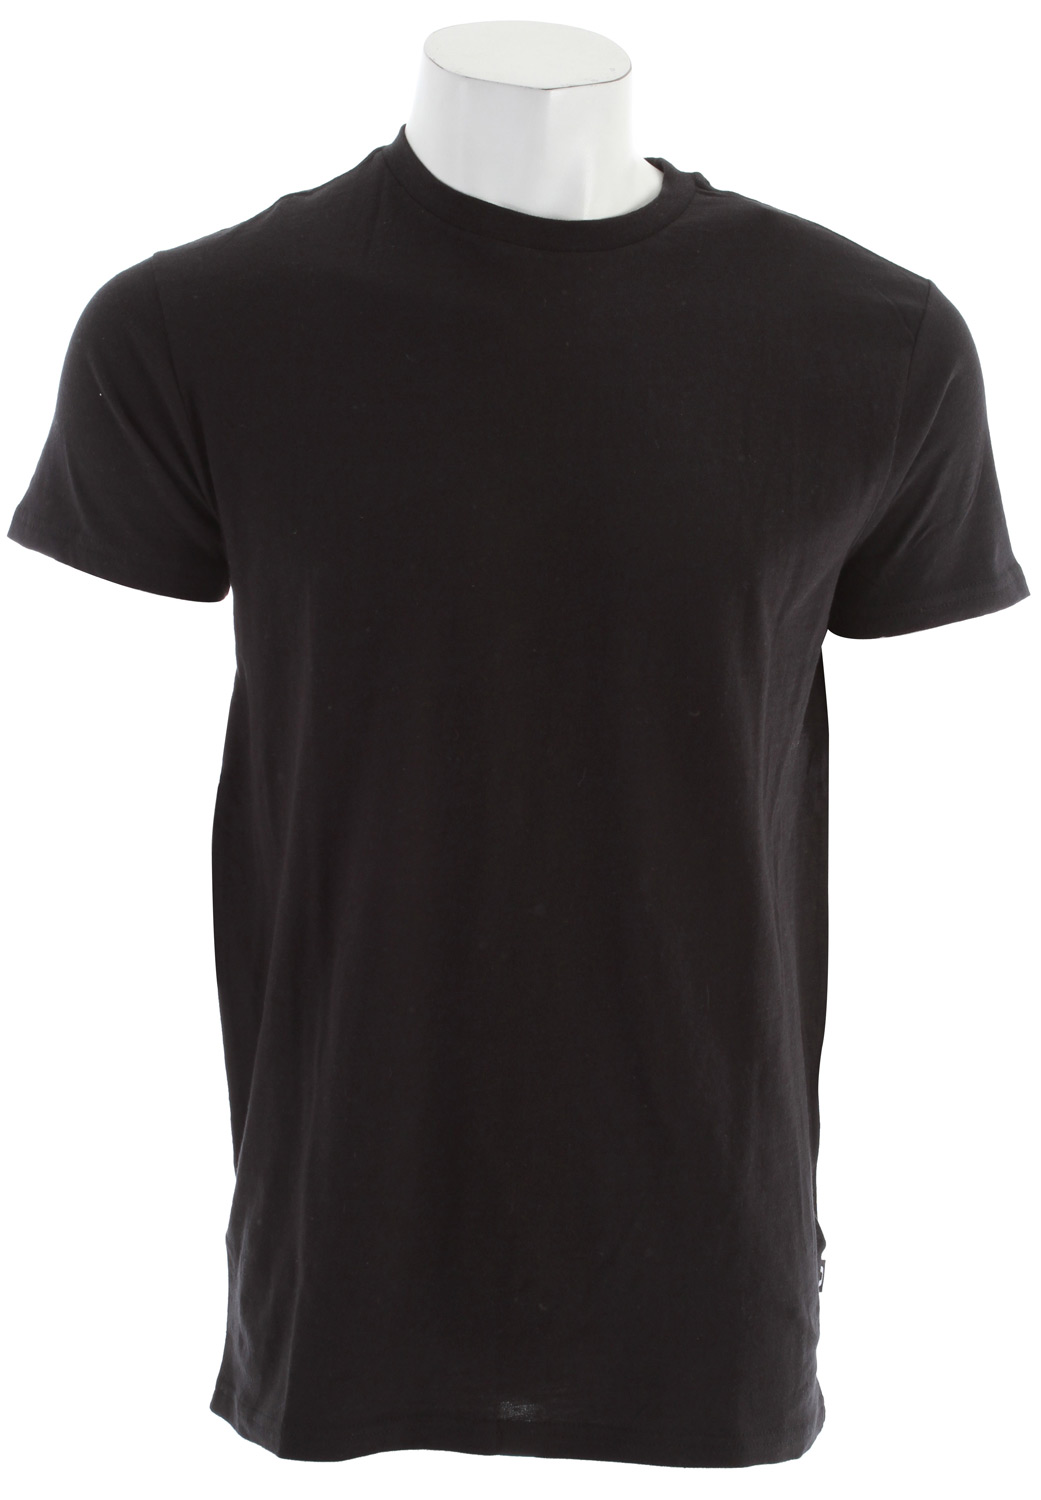 Key Features of The Oakley Basic T-Shirt: Regular Fit Crew Neck Short Sleeve Tee with front screen print 100% combed cotton Regular fit - $18.00